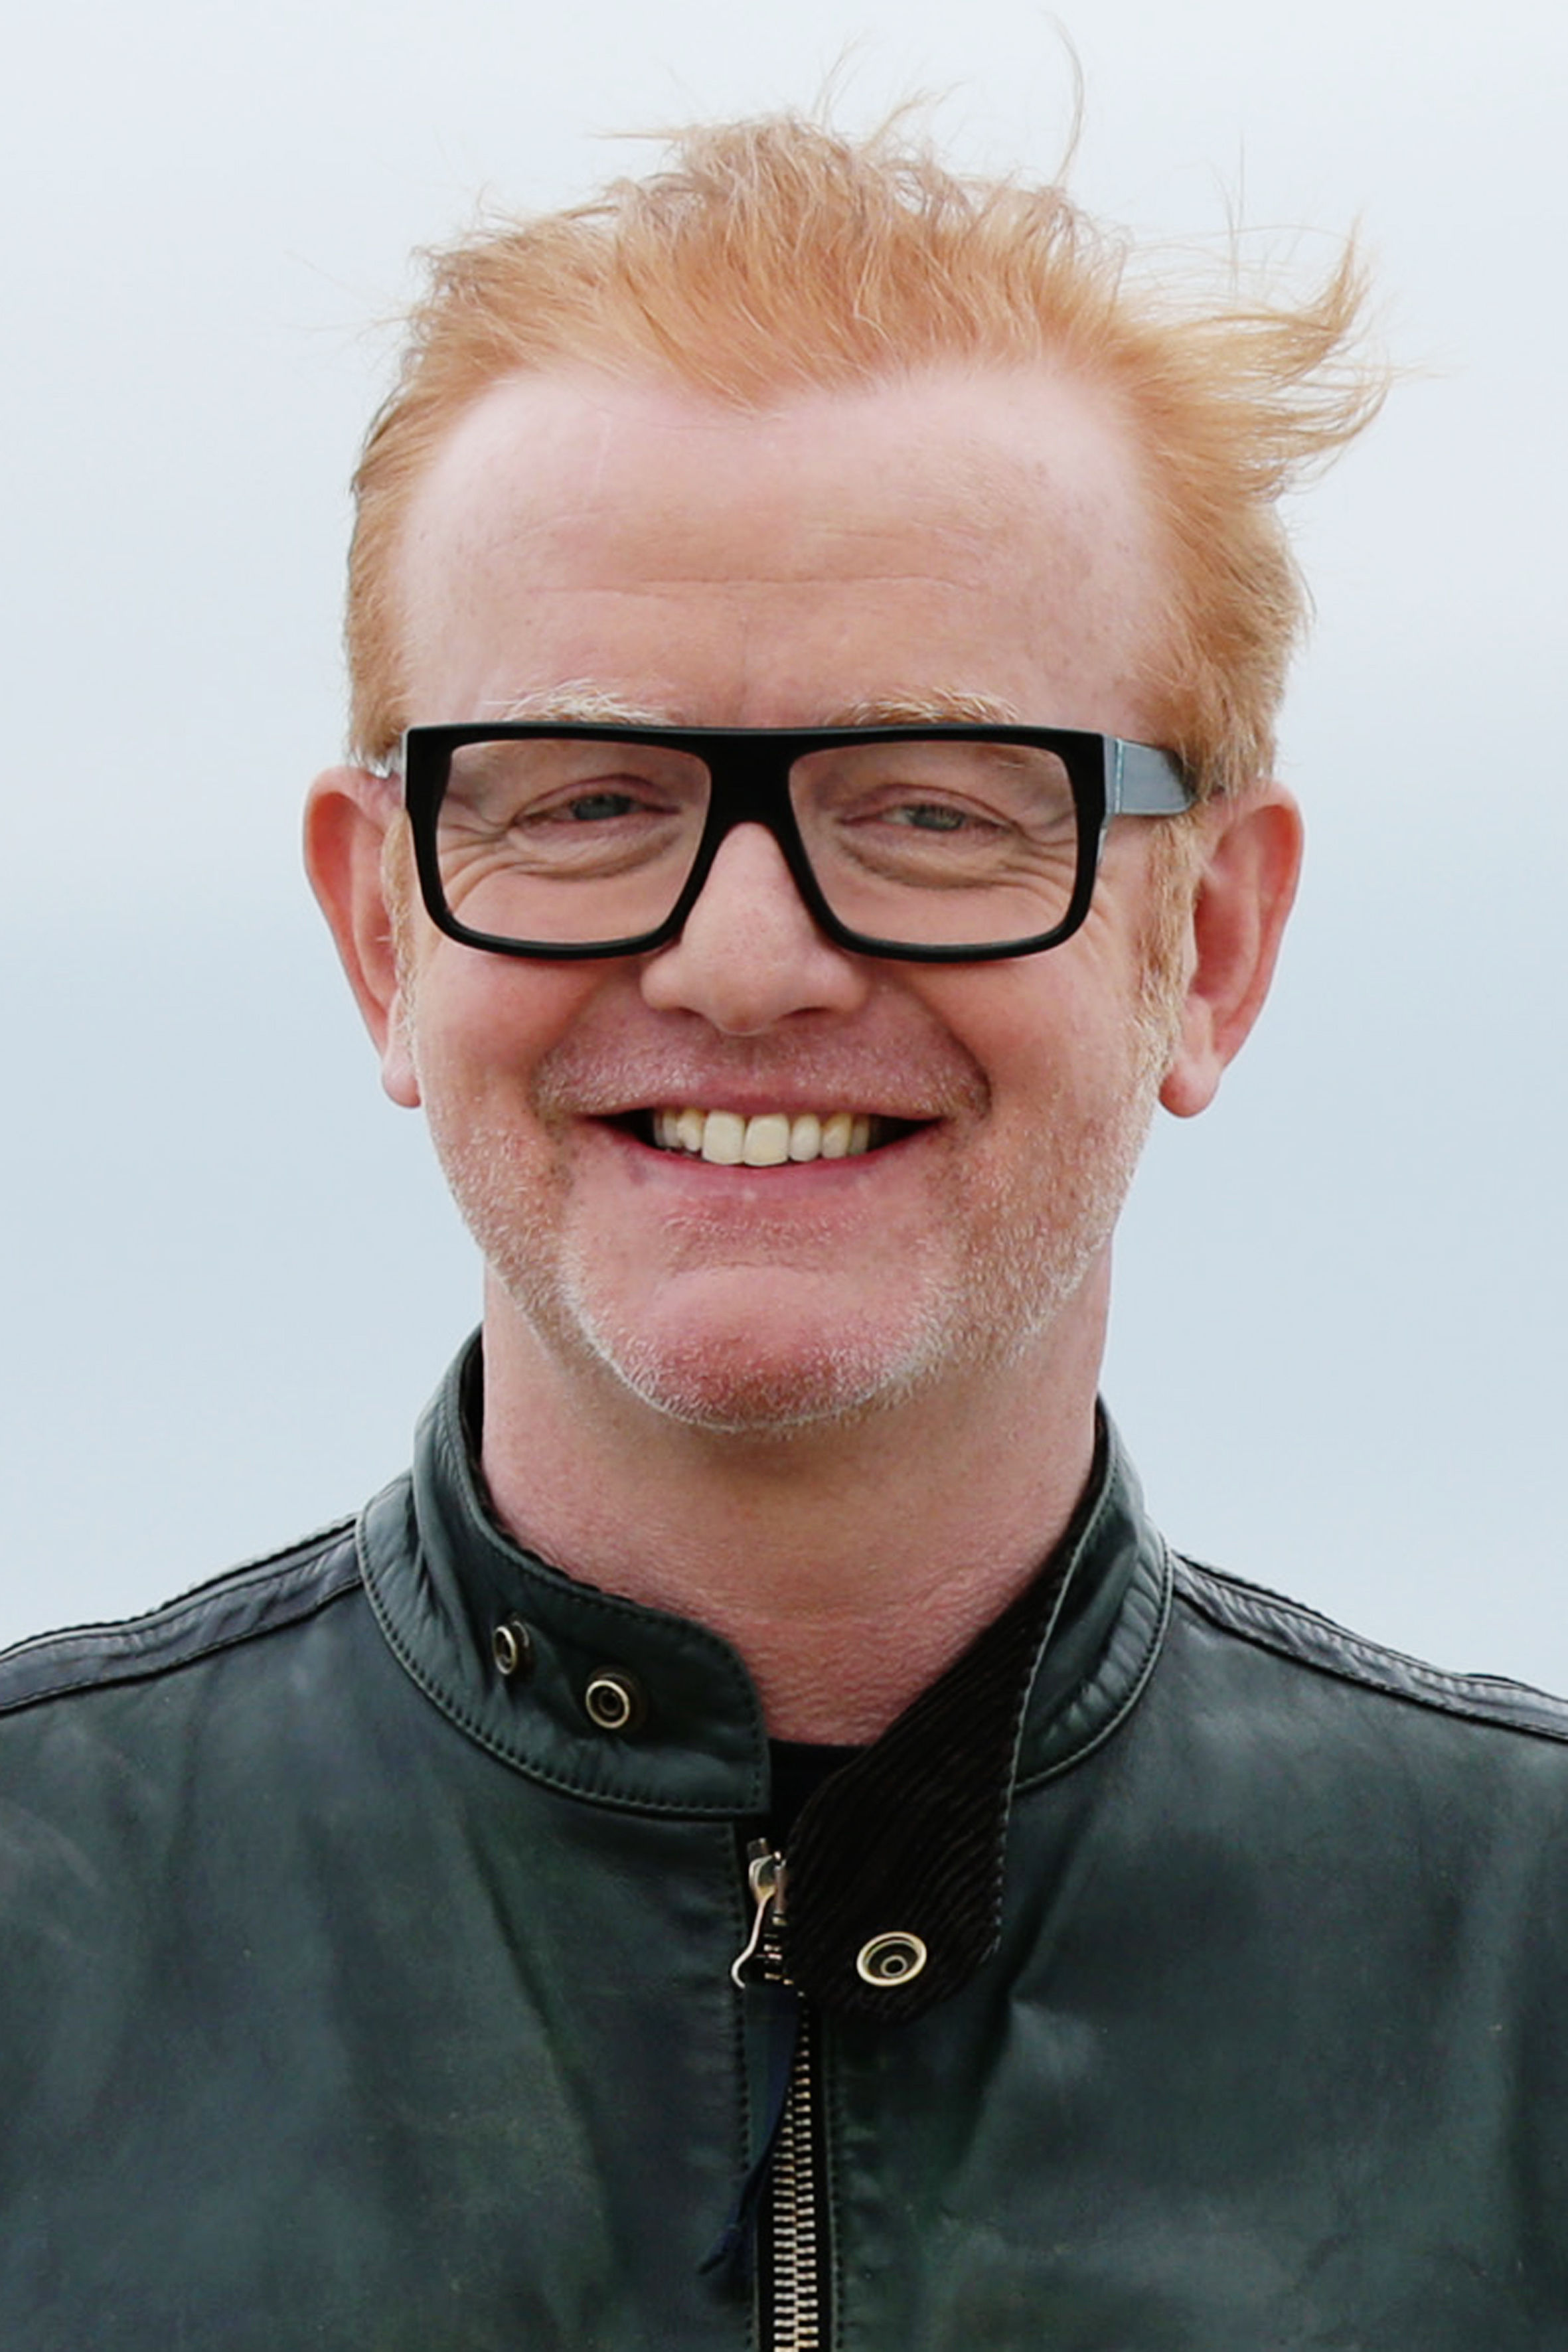 File photo dated 06/10/15 of Chris Evans, as the BBC is to reveal the names of all stars earning over £150,000 - a total of 96 people, of which only about a third are women. PRESS ASSOCIATION Photo. Issue date: Wednesday July 19, 2017. Speaking ahead o